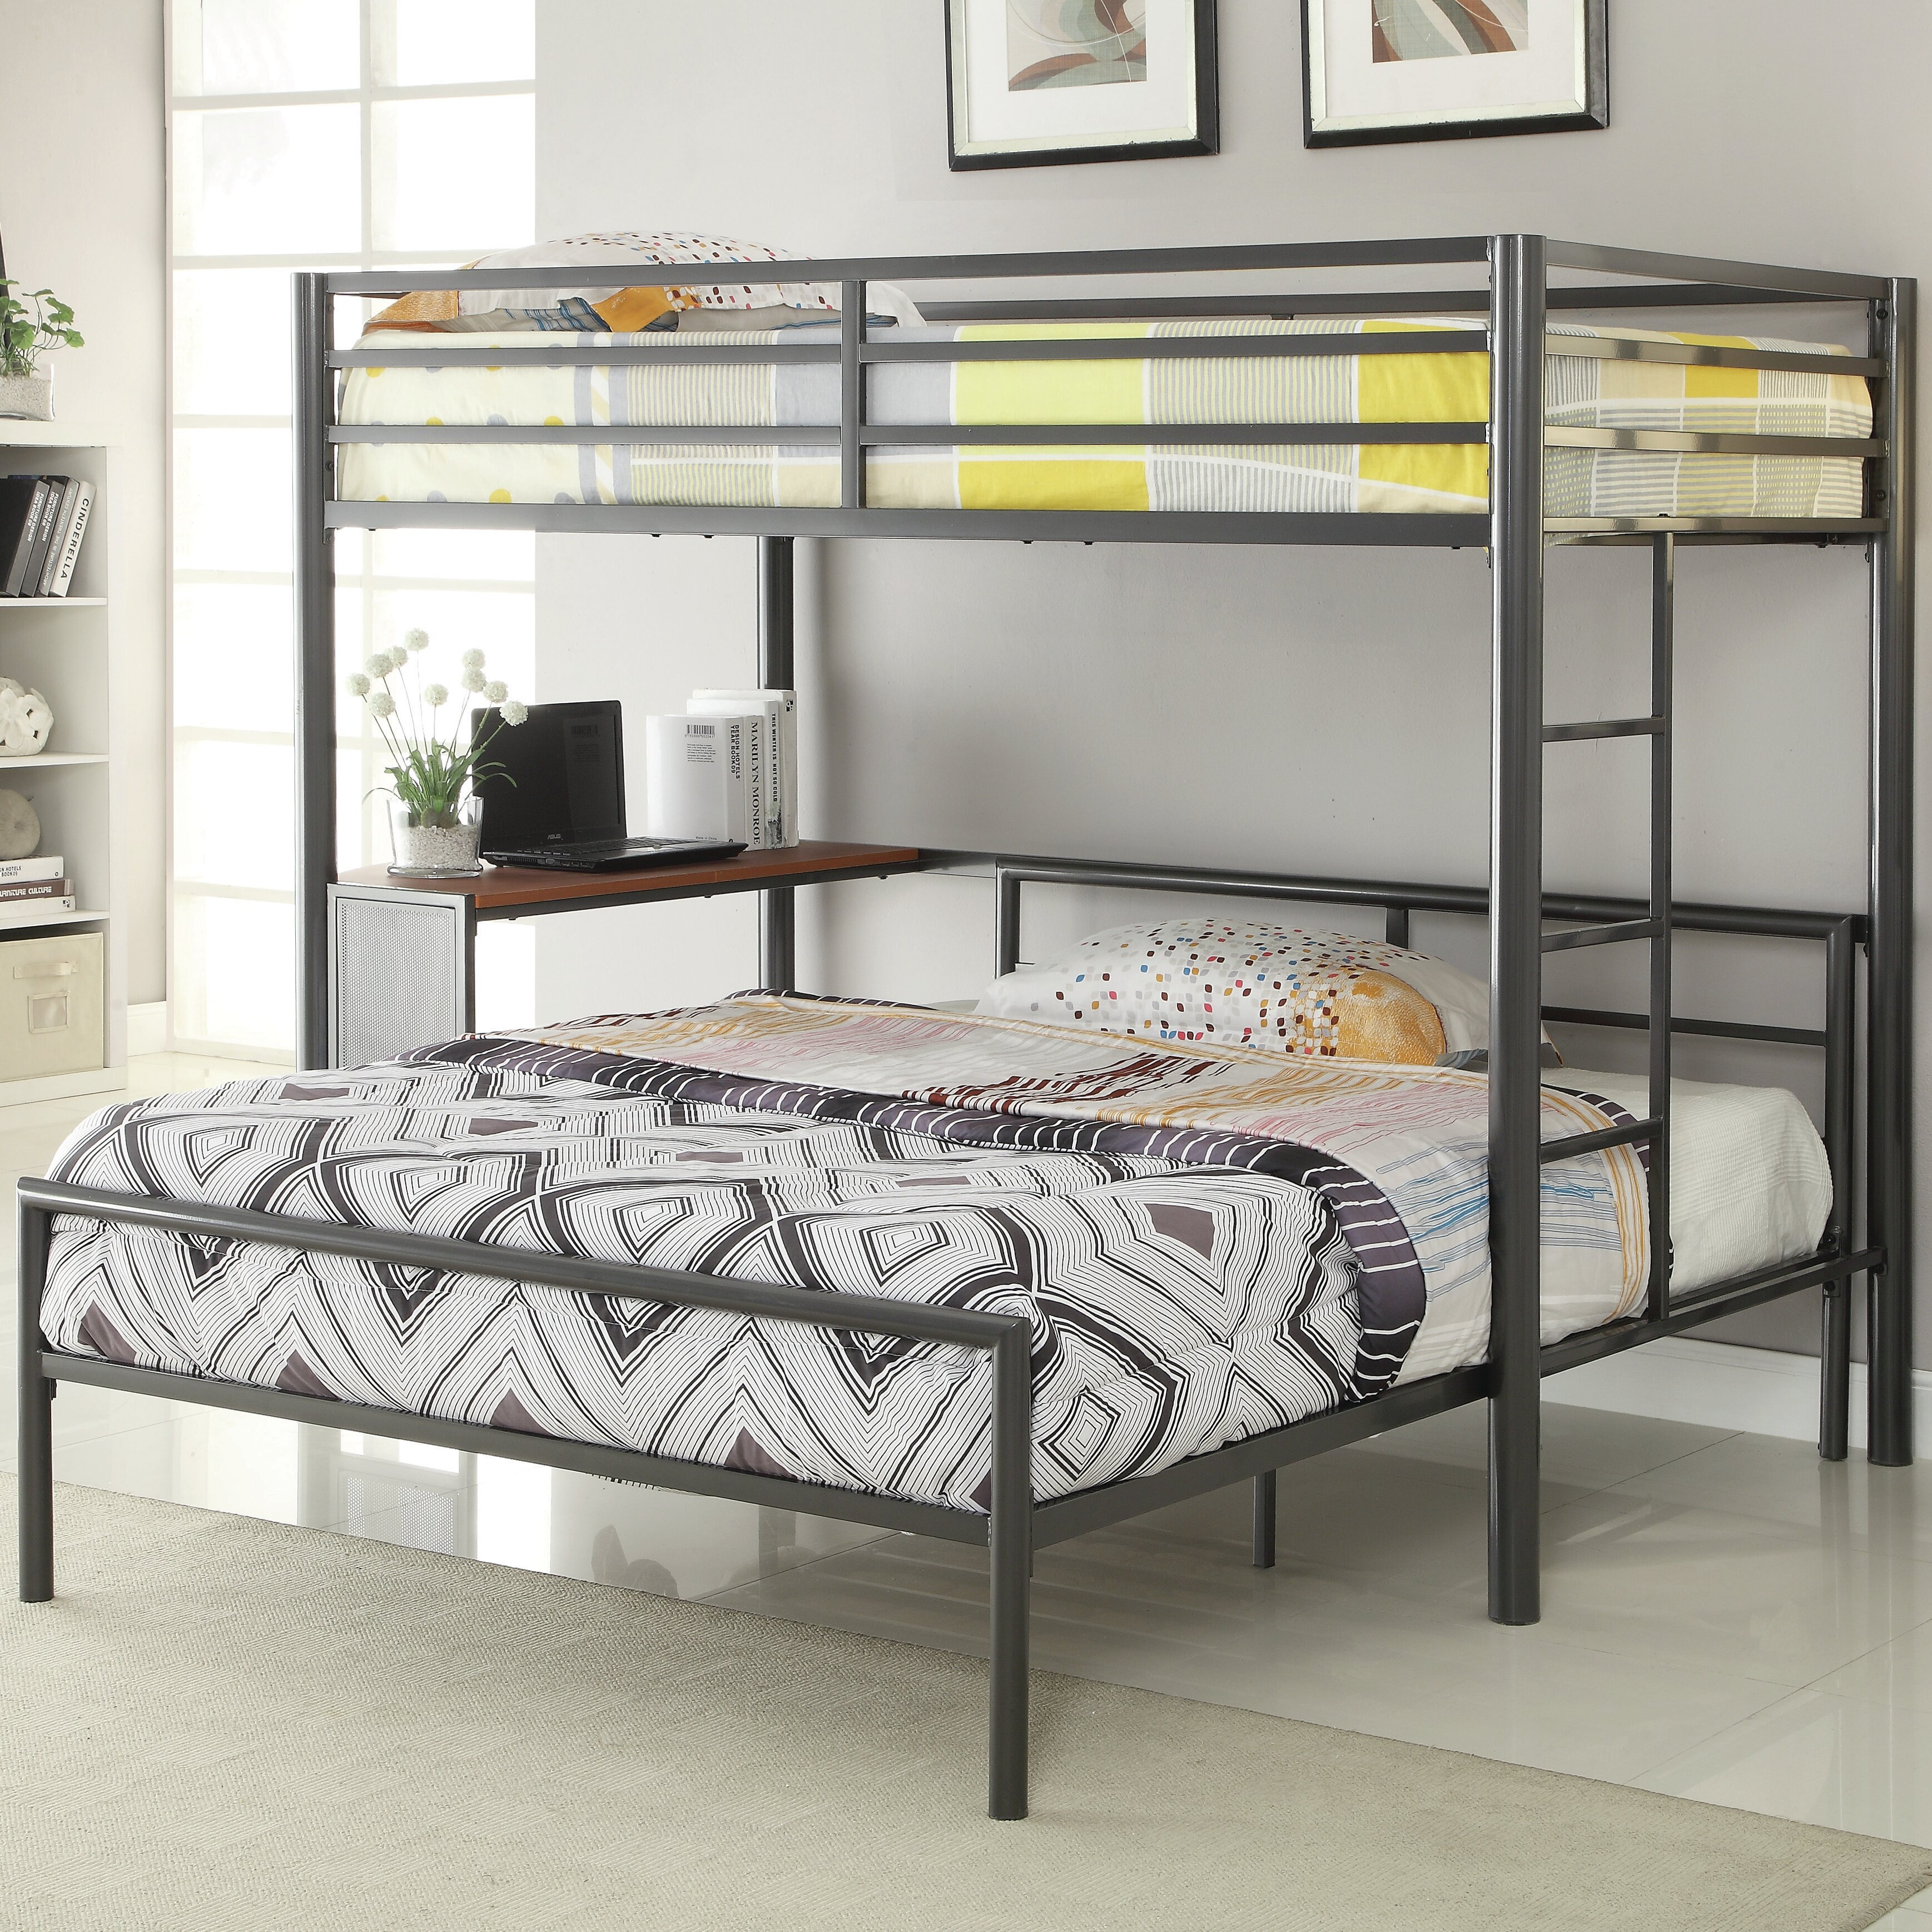 Wildon home twin over full l shaped bunk bed reviews 2 twin beds make a queen